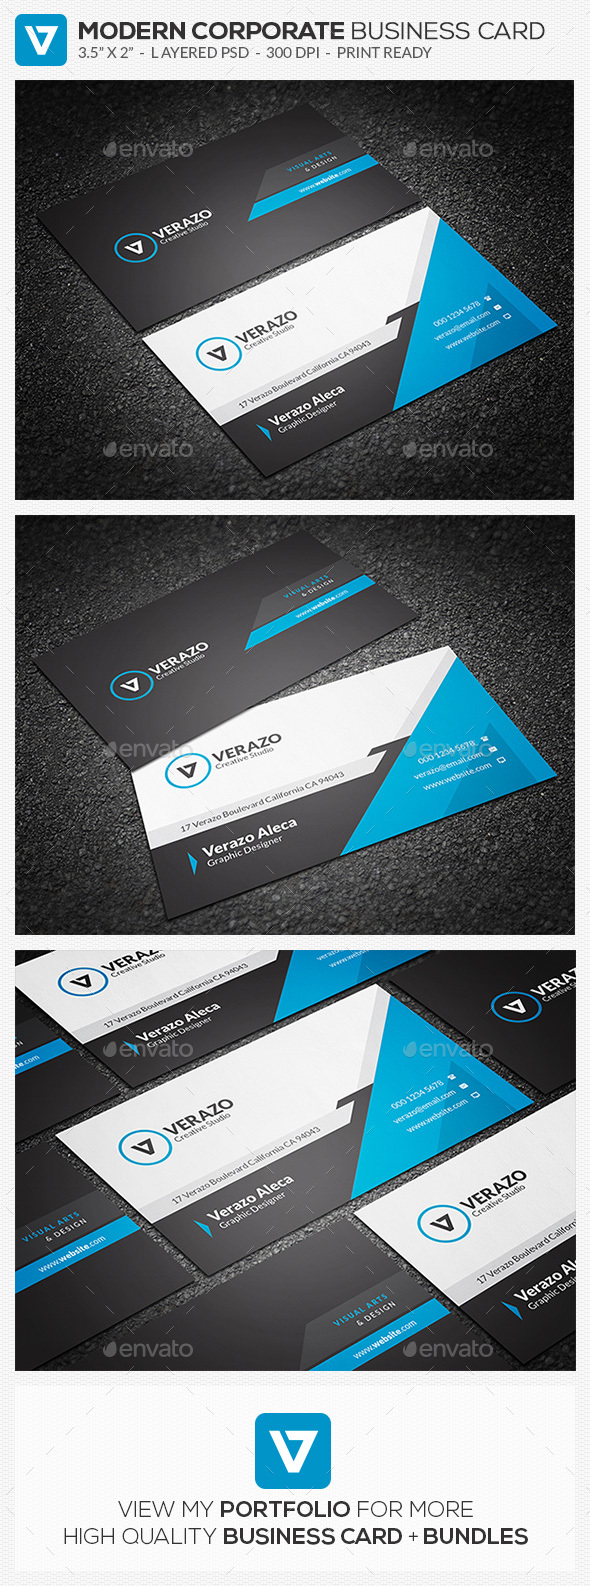 Modern blue corporate business card template by verazo graphicriver modern blue corporate business card template corporate business cards reheart Image collections